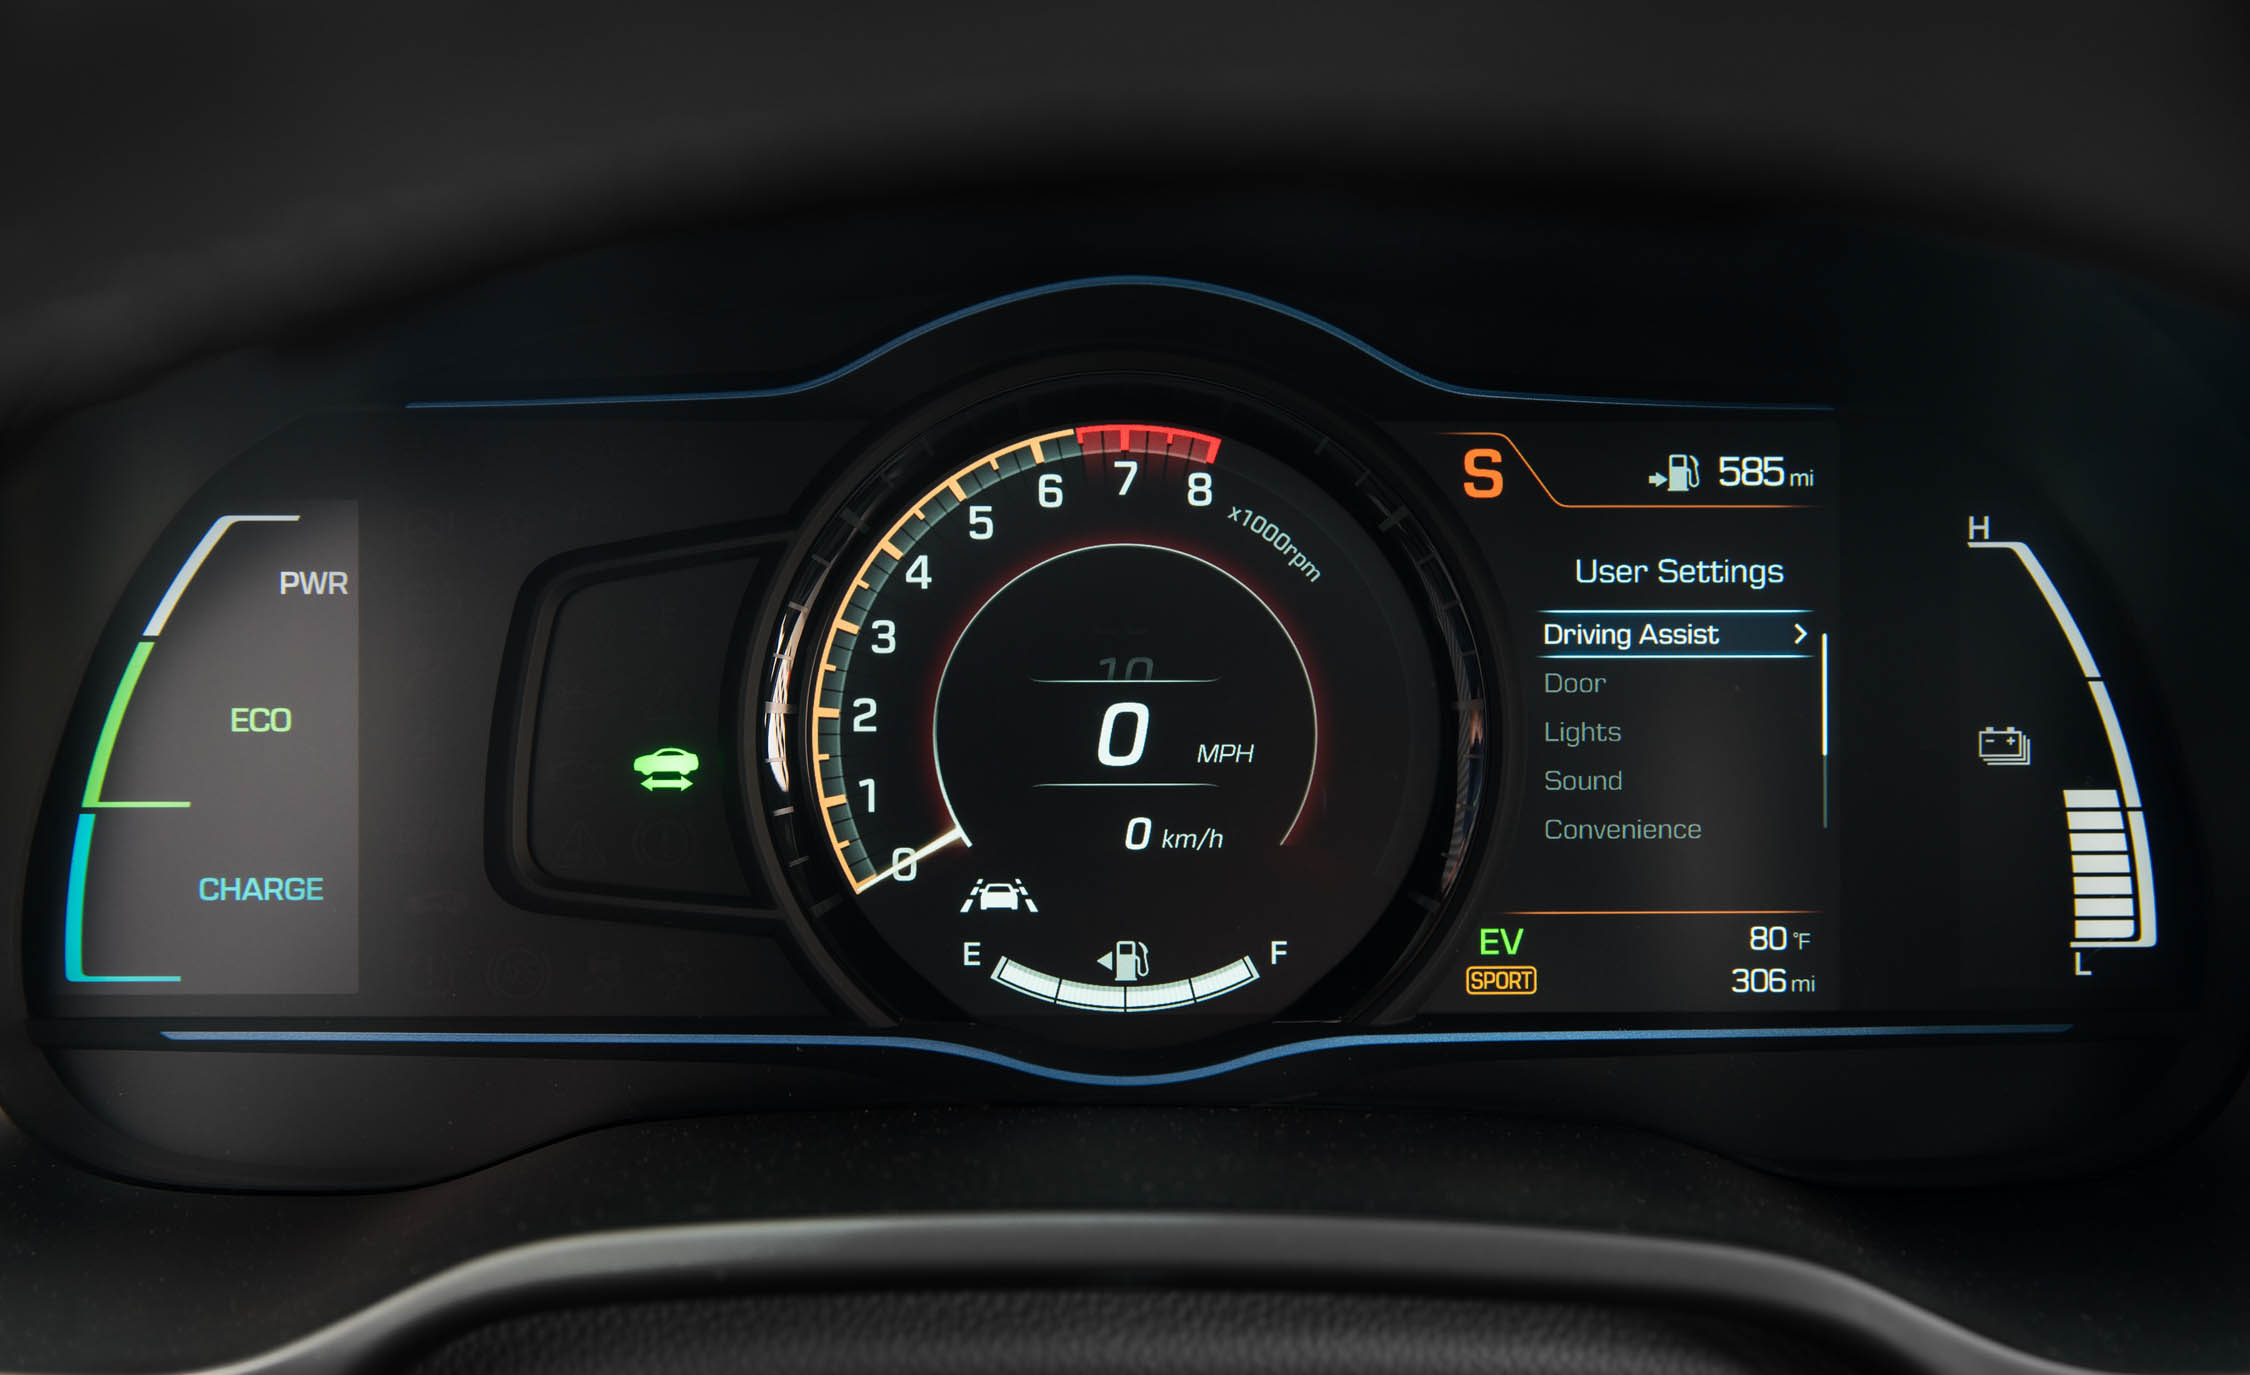 2017 Hyundai Ioniq Hybrid Interior View Speedometer Instrument Cluster (Photo 56 of 67)